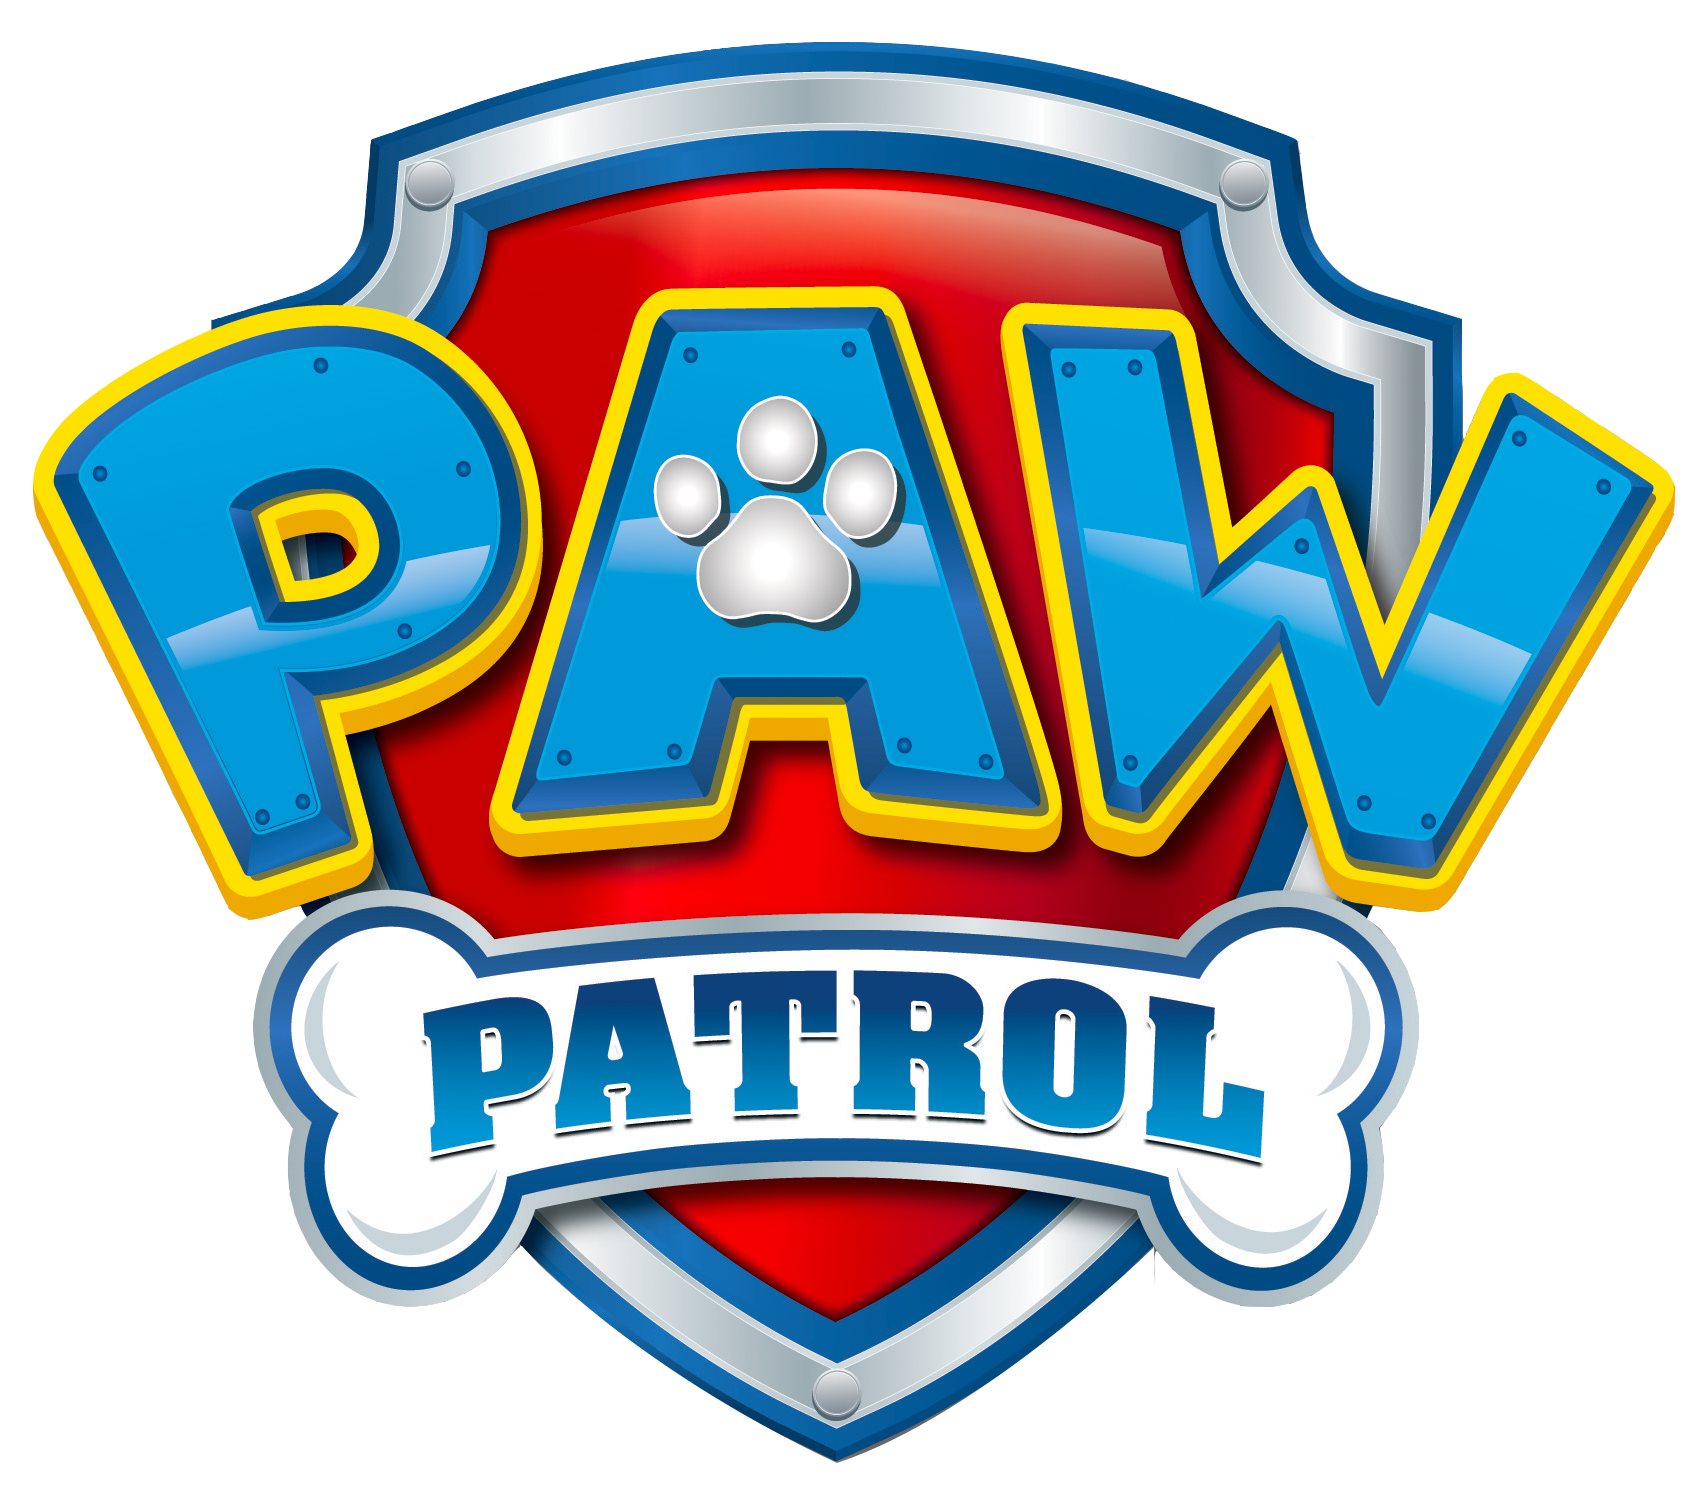 jpg transparent stock Bone transparent paw patrol. Logo png no background